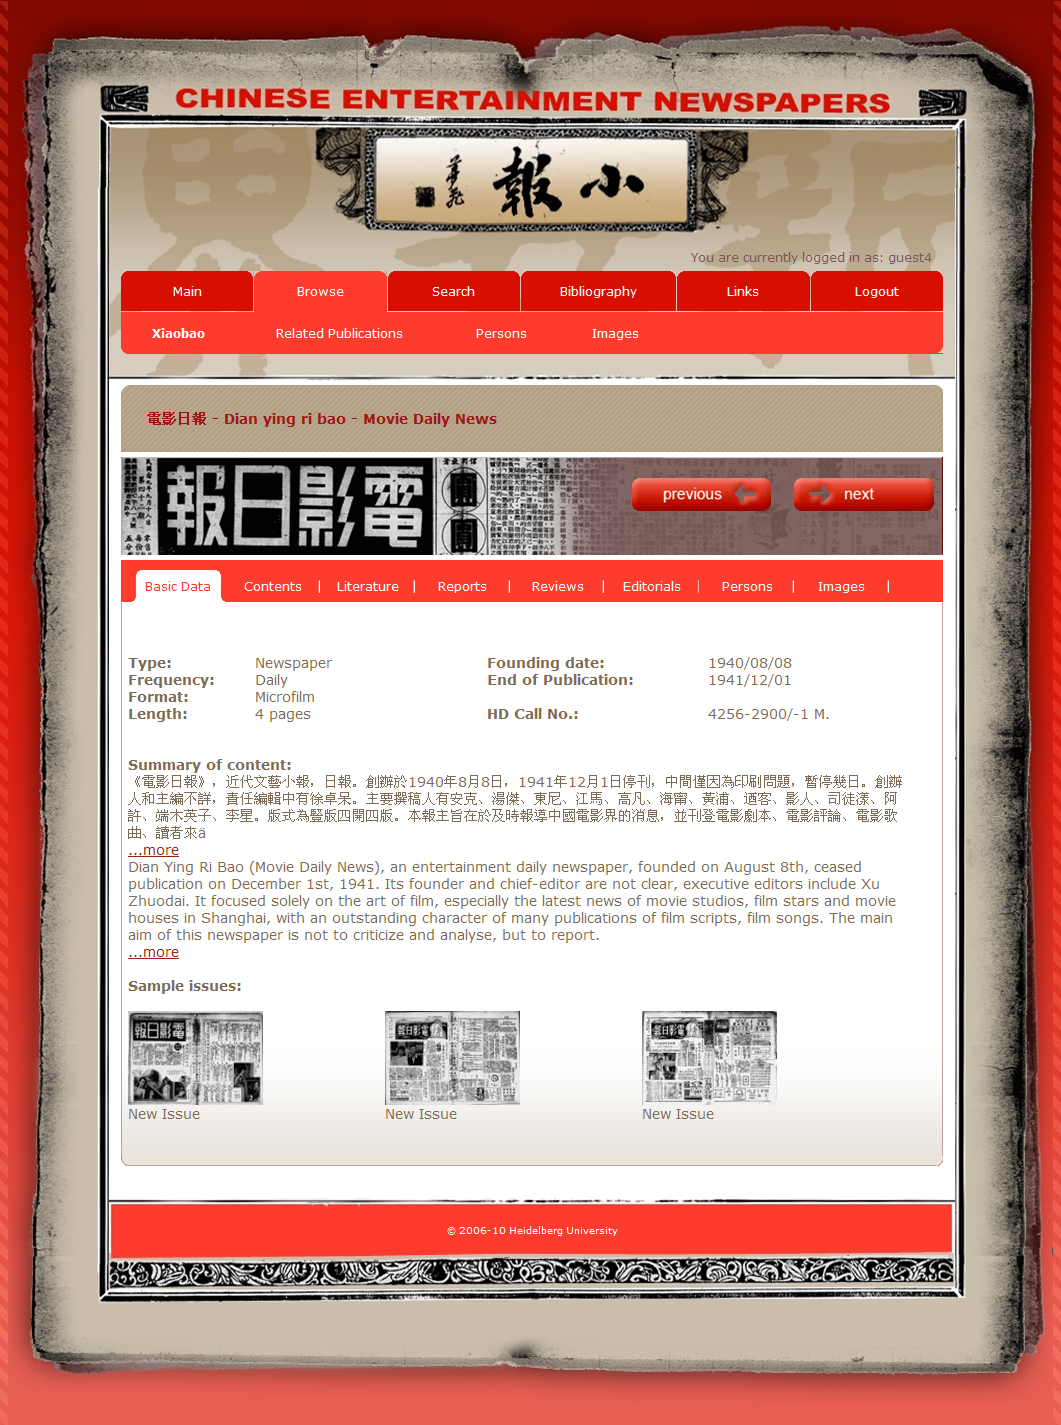 Chinese Entertainment Newspapers – Browsing the list of xiaobao newspapers.